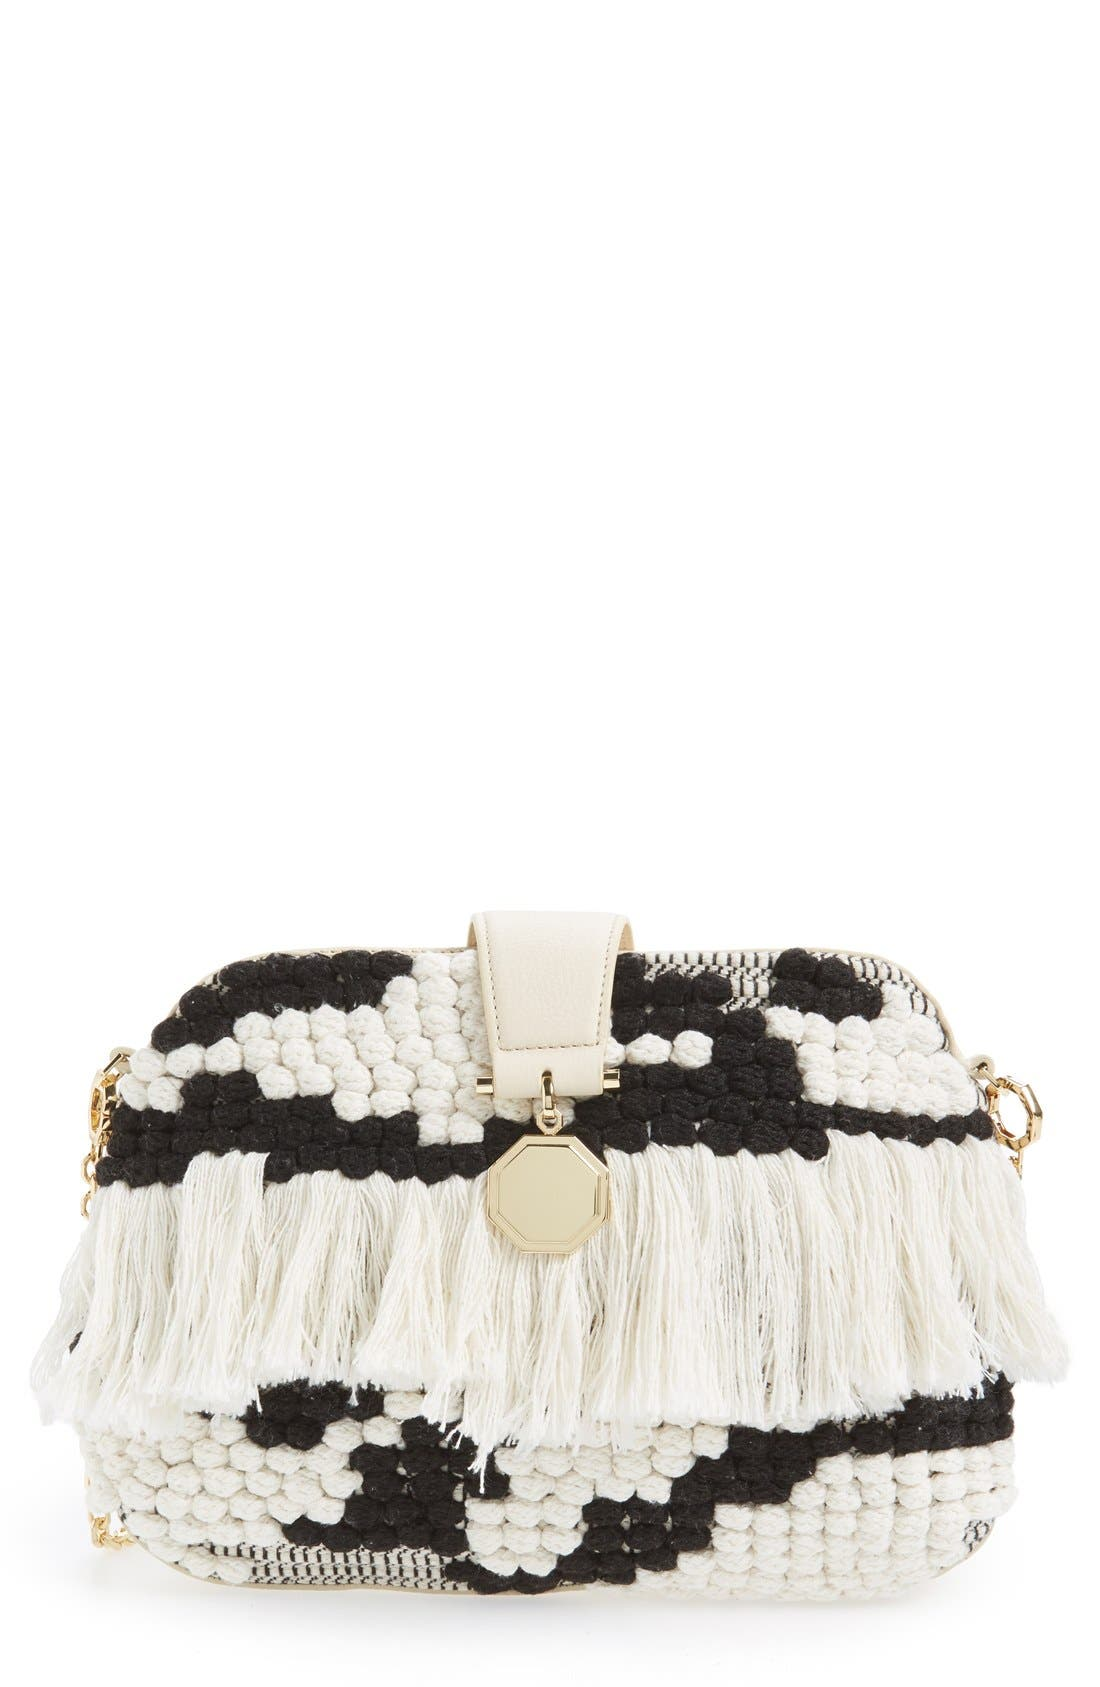 Alternate Image 1 Selected - Louise et Cie 'Fae' Woven Clutch